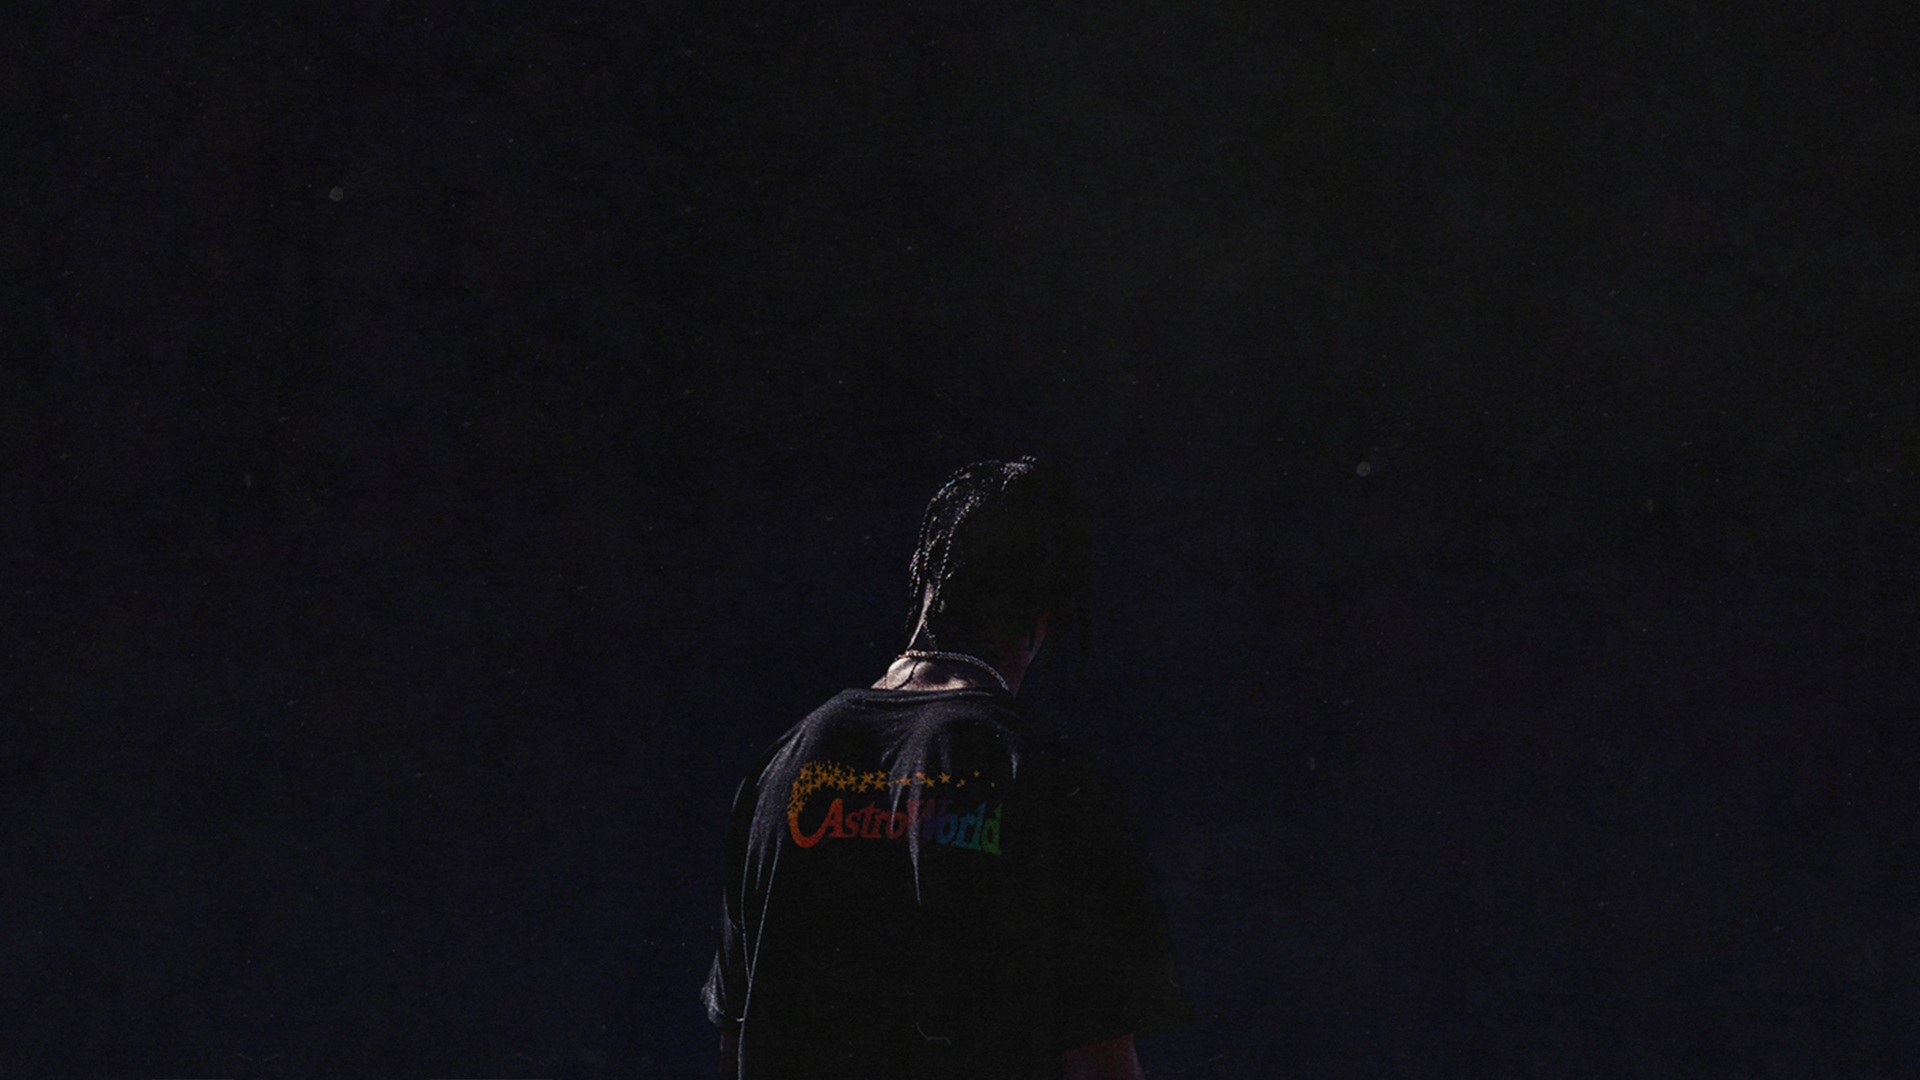 Astroworld Wallpaper 1920x1080 Posted By Zoey Tremblay